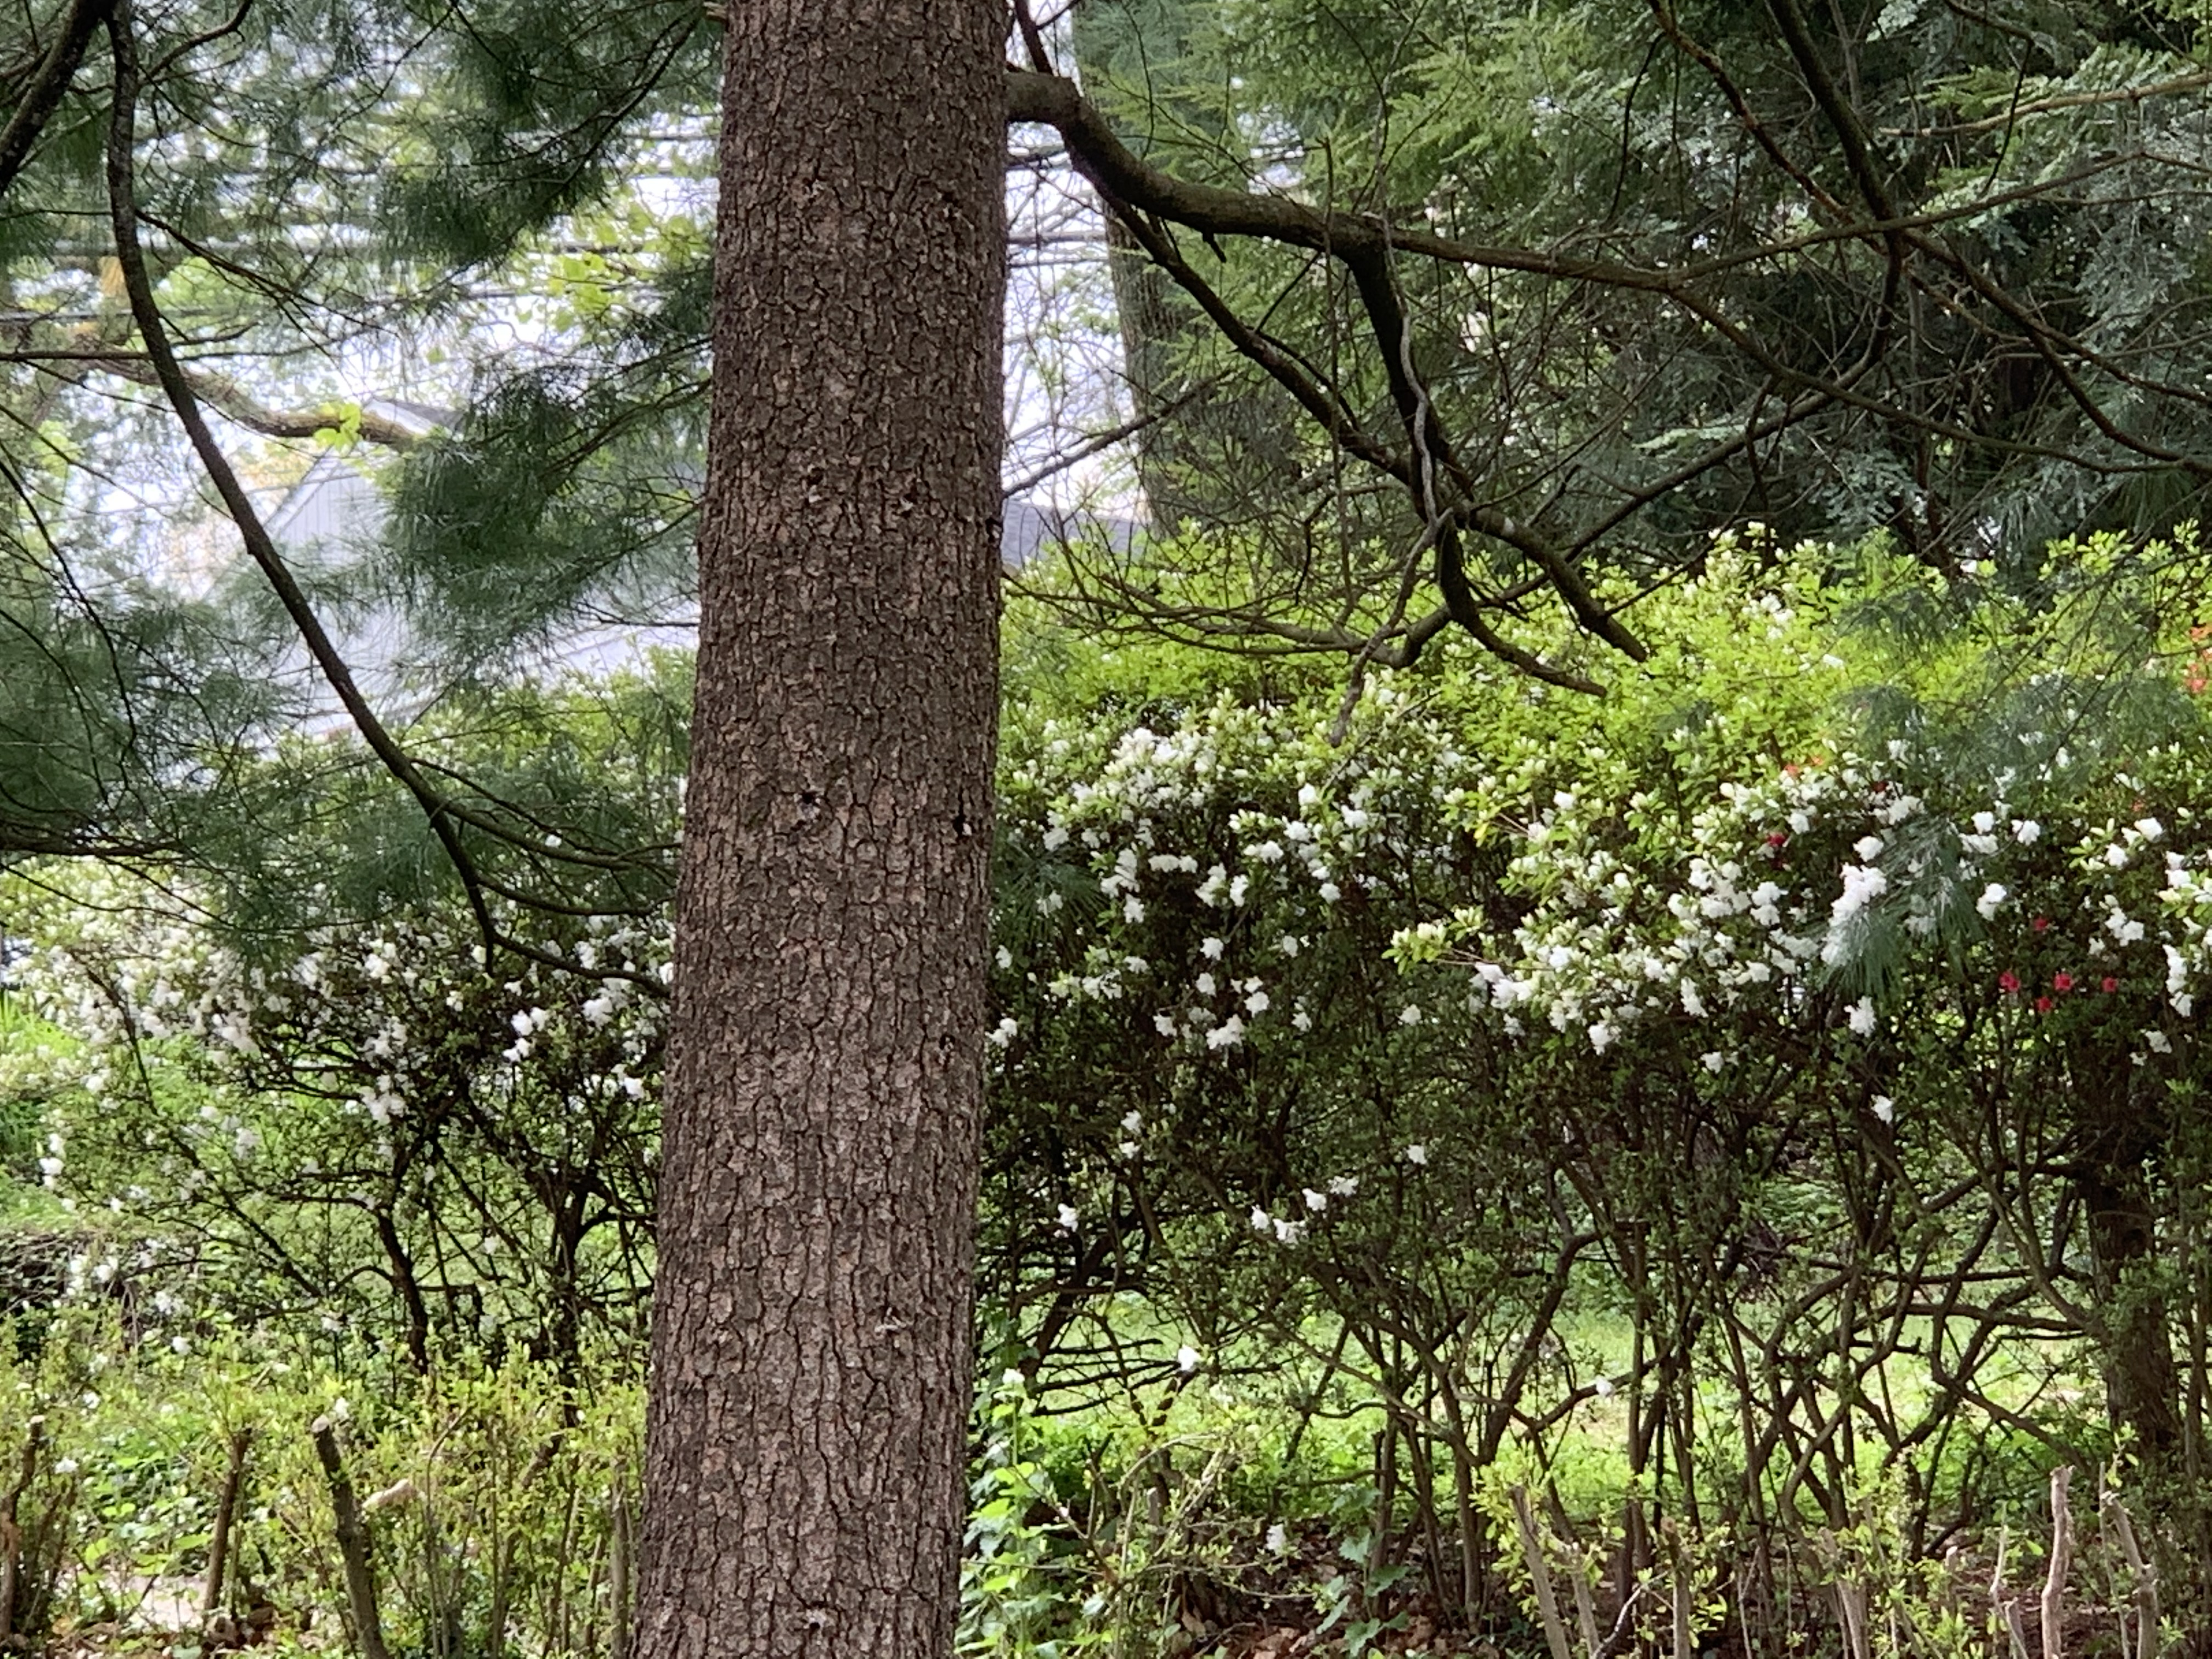 is this 1+ acre lot an azalea forest or my own front yard?